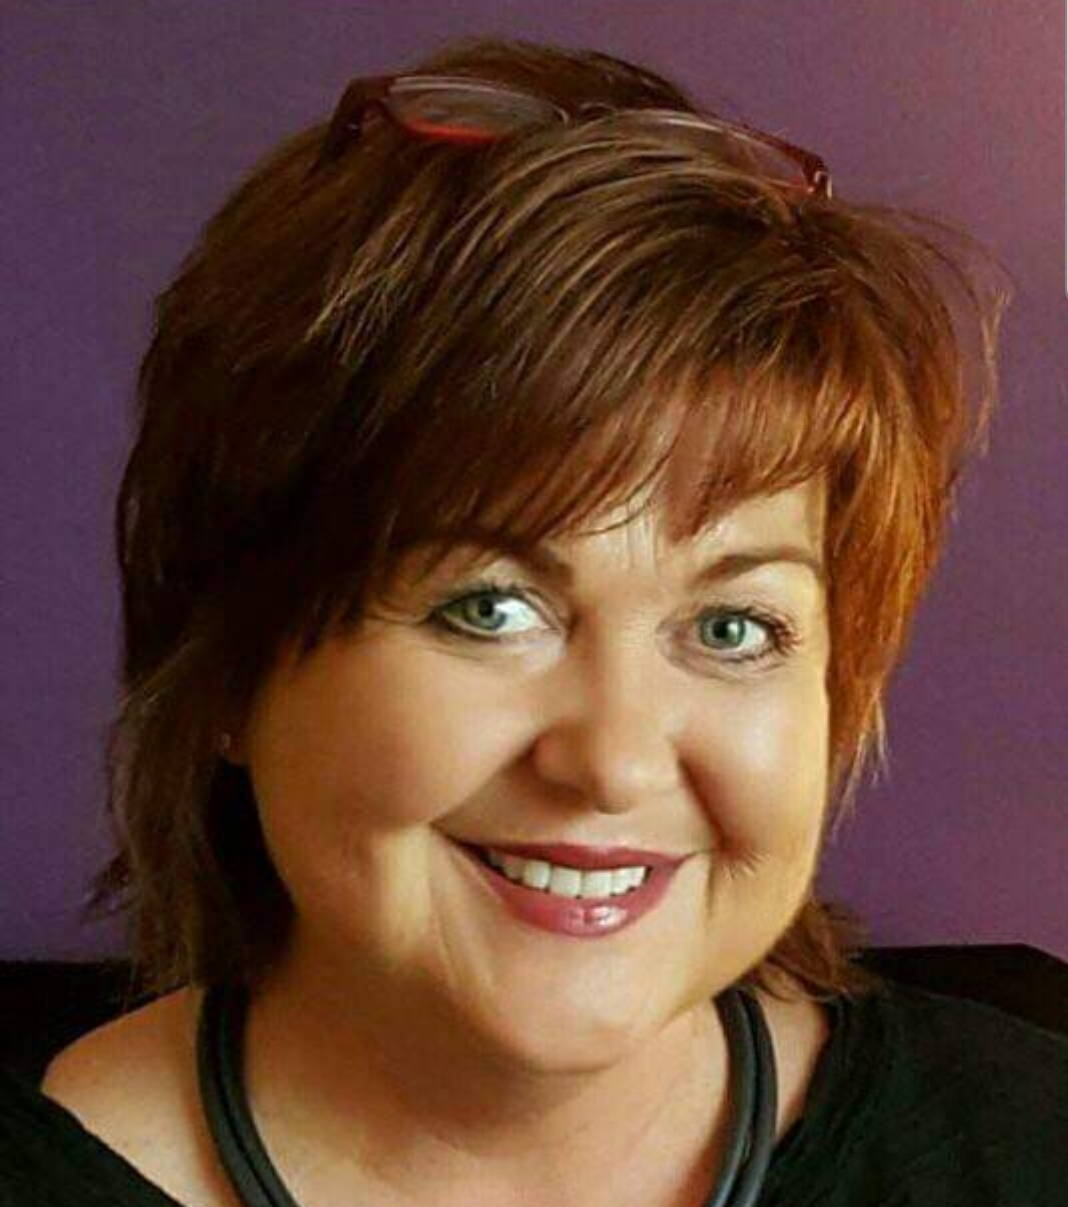 Helen Fogarty, professional cosmetic nurse at A New You in Springhill Clinic